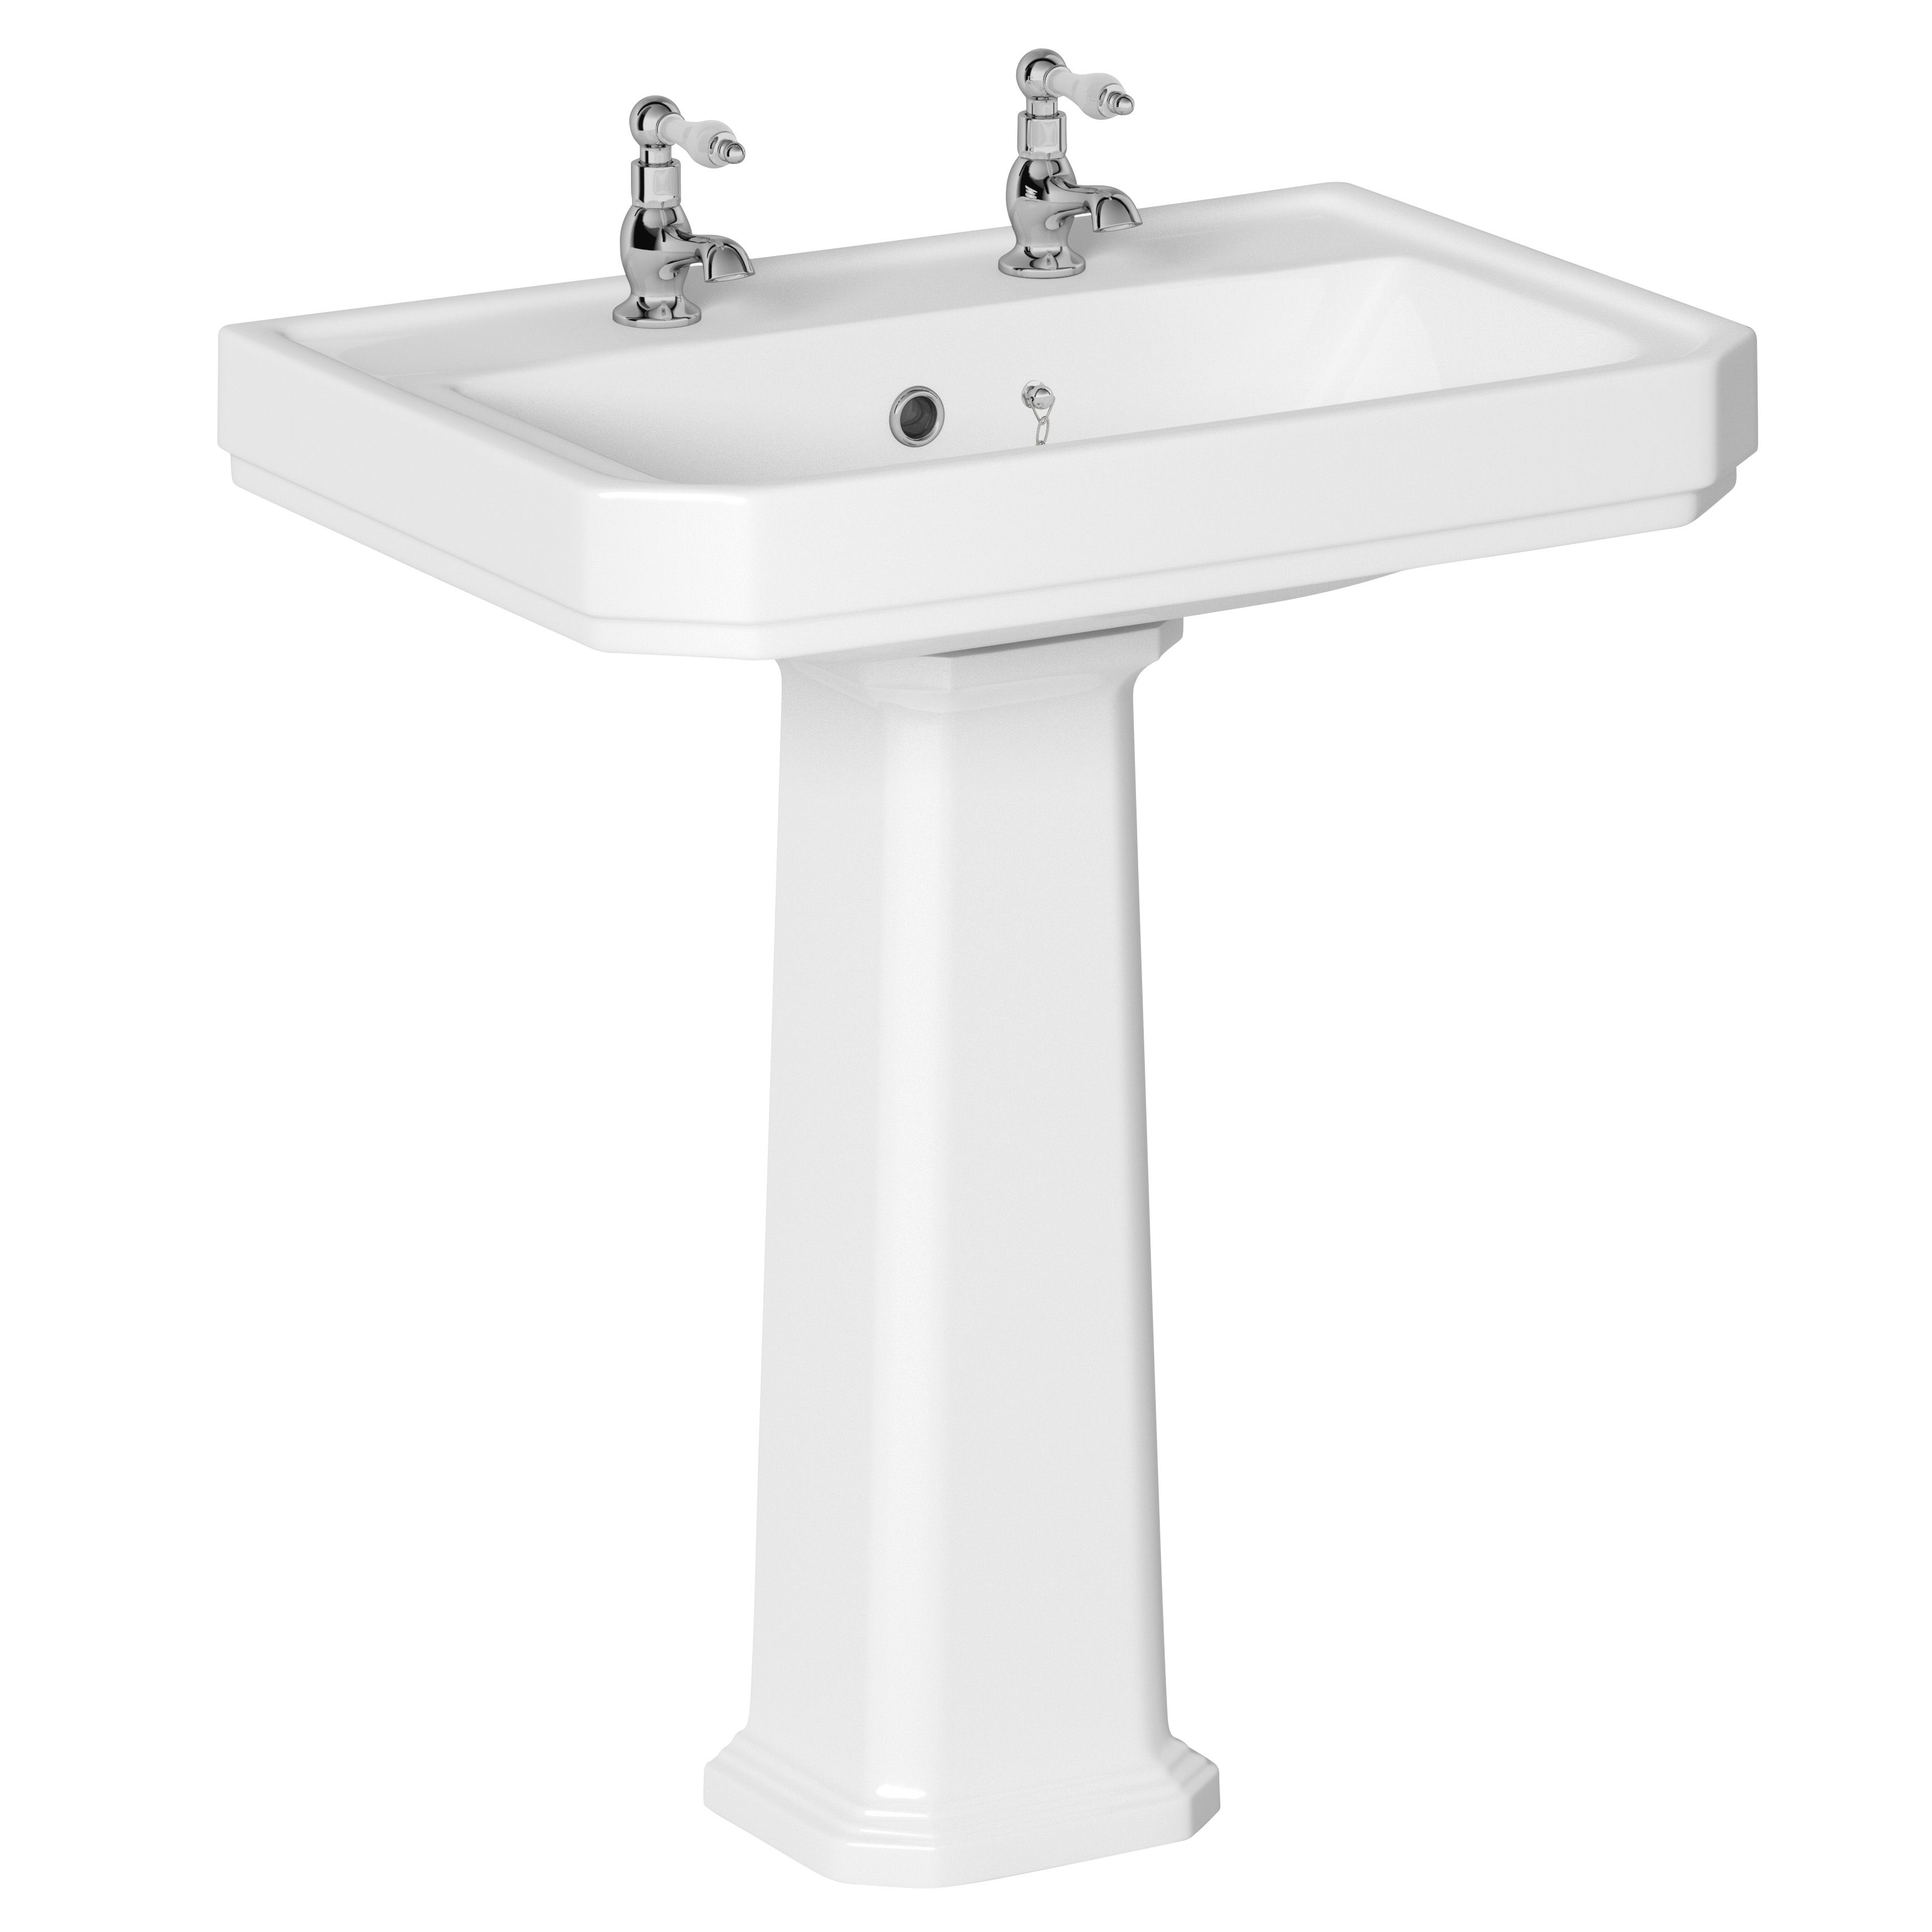 amazon retrospect com inch small with top standard console spacing american sink dp pedestal white faucet